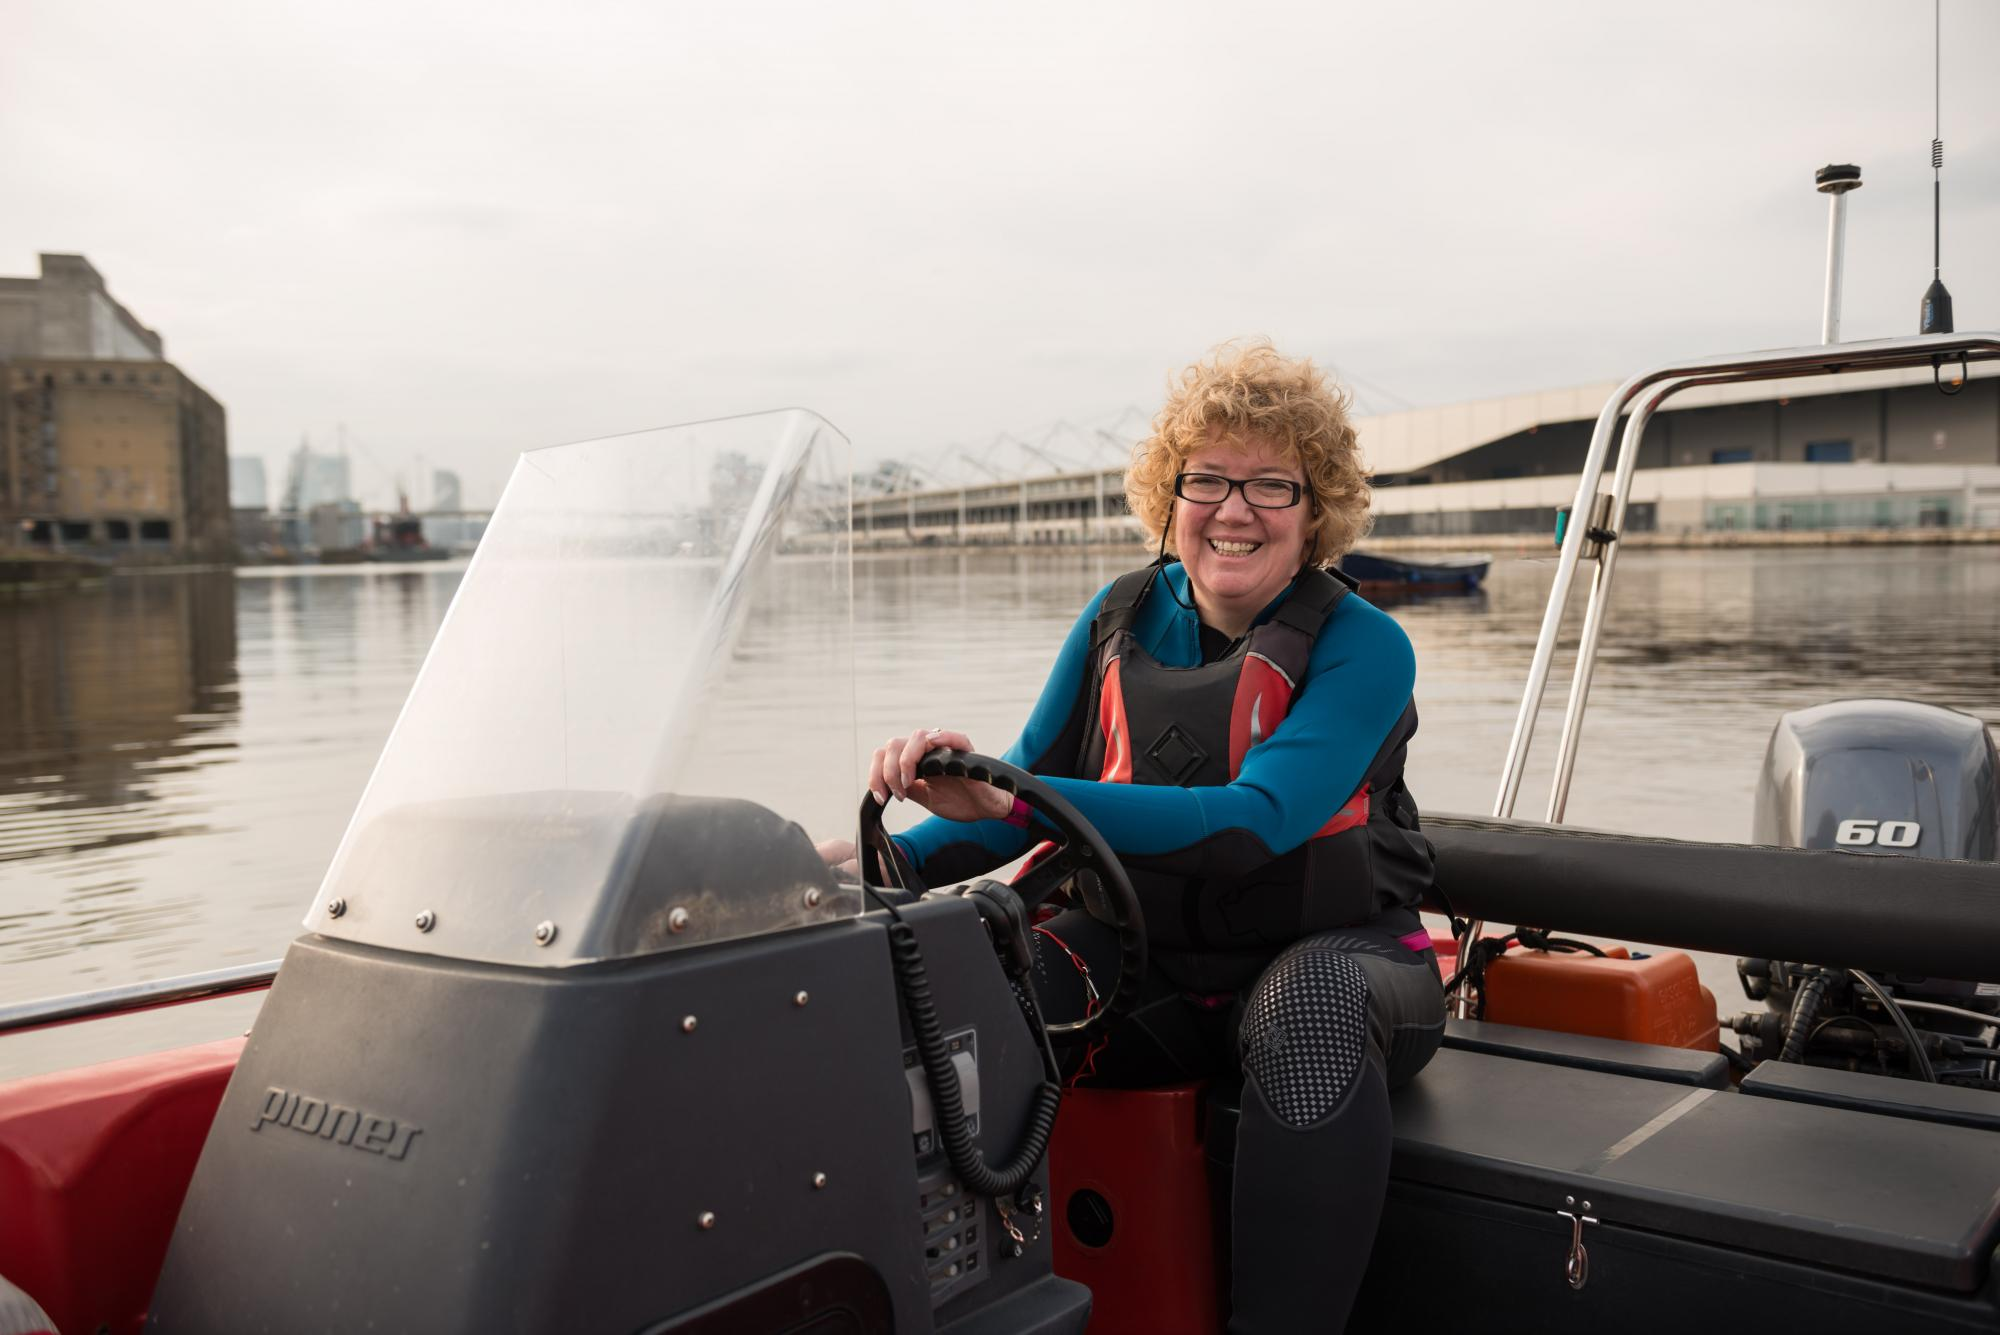 Smiling lady volunteering as a watersports instructor and driving a boat